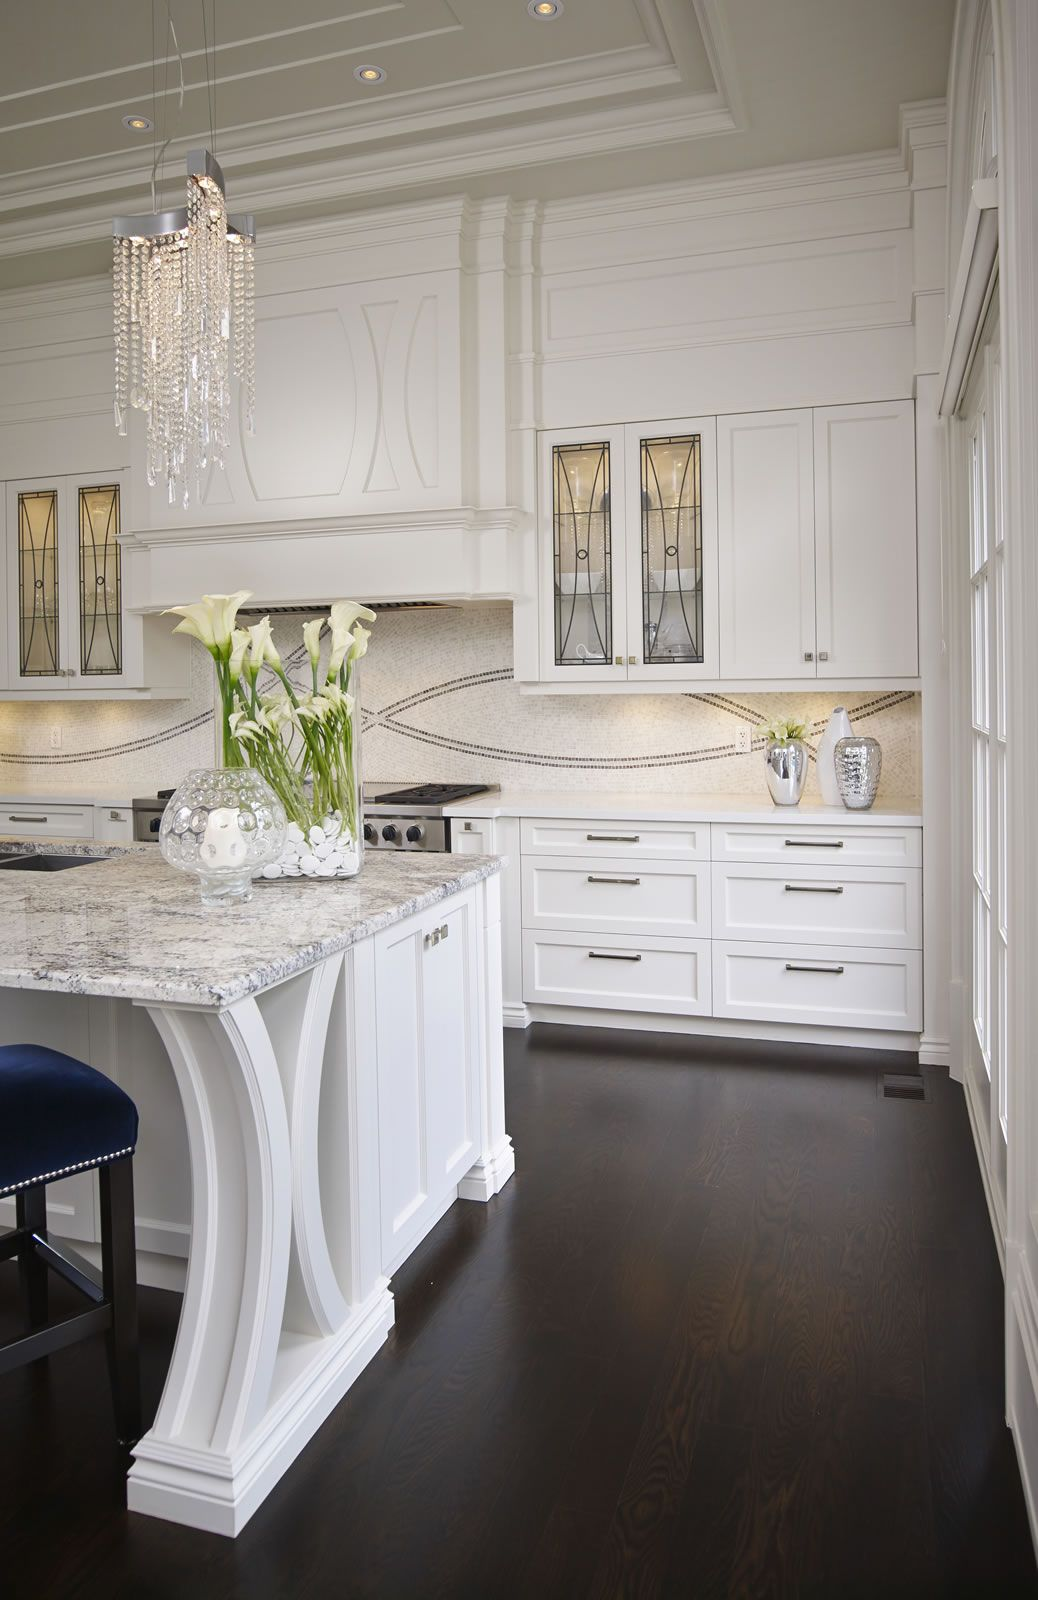 This Grand Residence Is Situated On The Picturesque Lakeshore Road Of  Burlington, Ontario Canada. Representing A U0026 Project, The Square Foot Home  Boasts ...